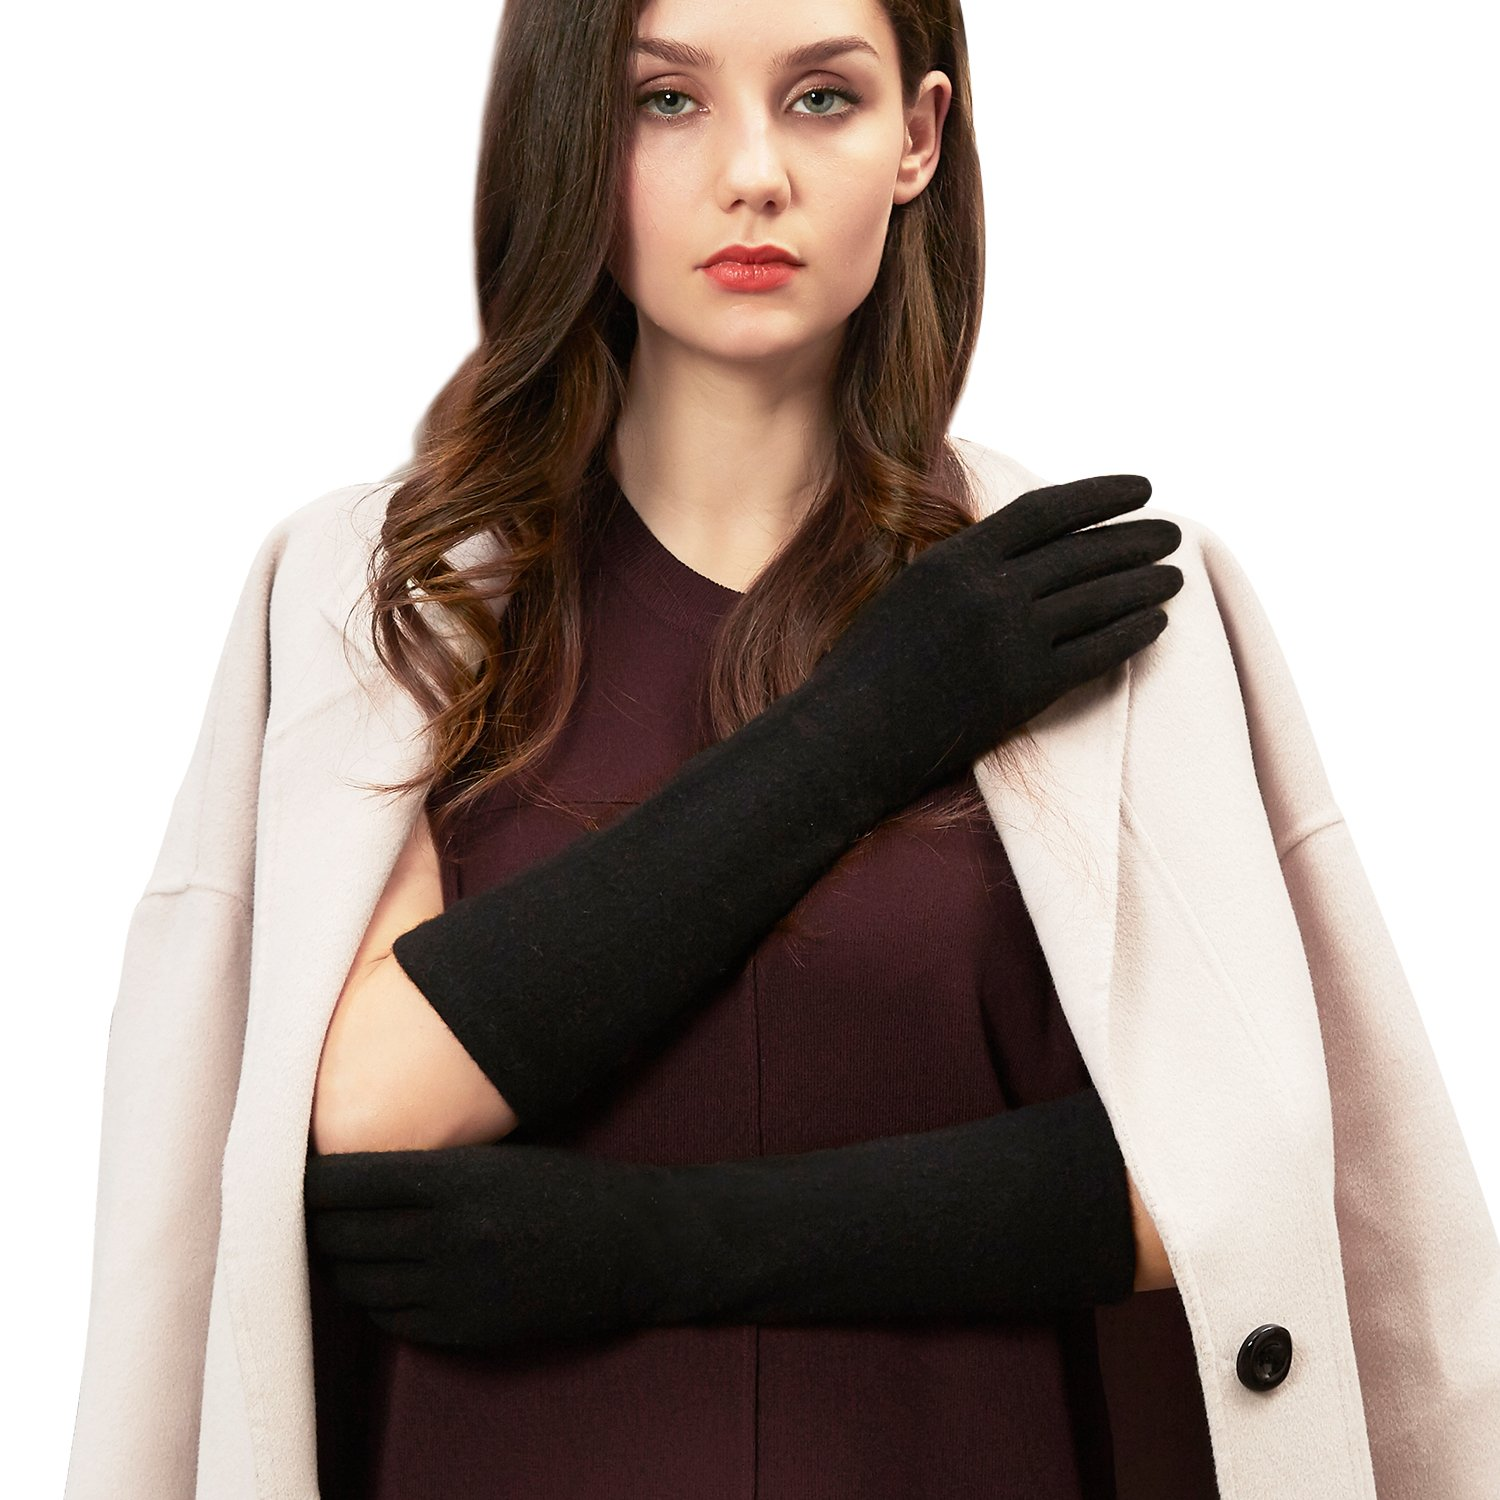 GSG 10.99 Lady Fashion Touchscreen Wool Gloves Arm Warmers Gloves Mittens Women Long Slim Dress Accessory Mother Girlfriend Nice Gifts